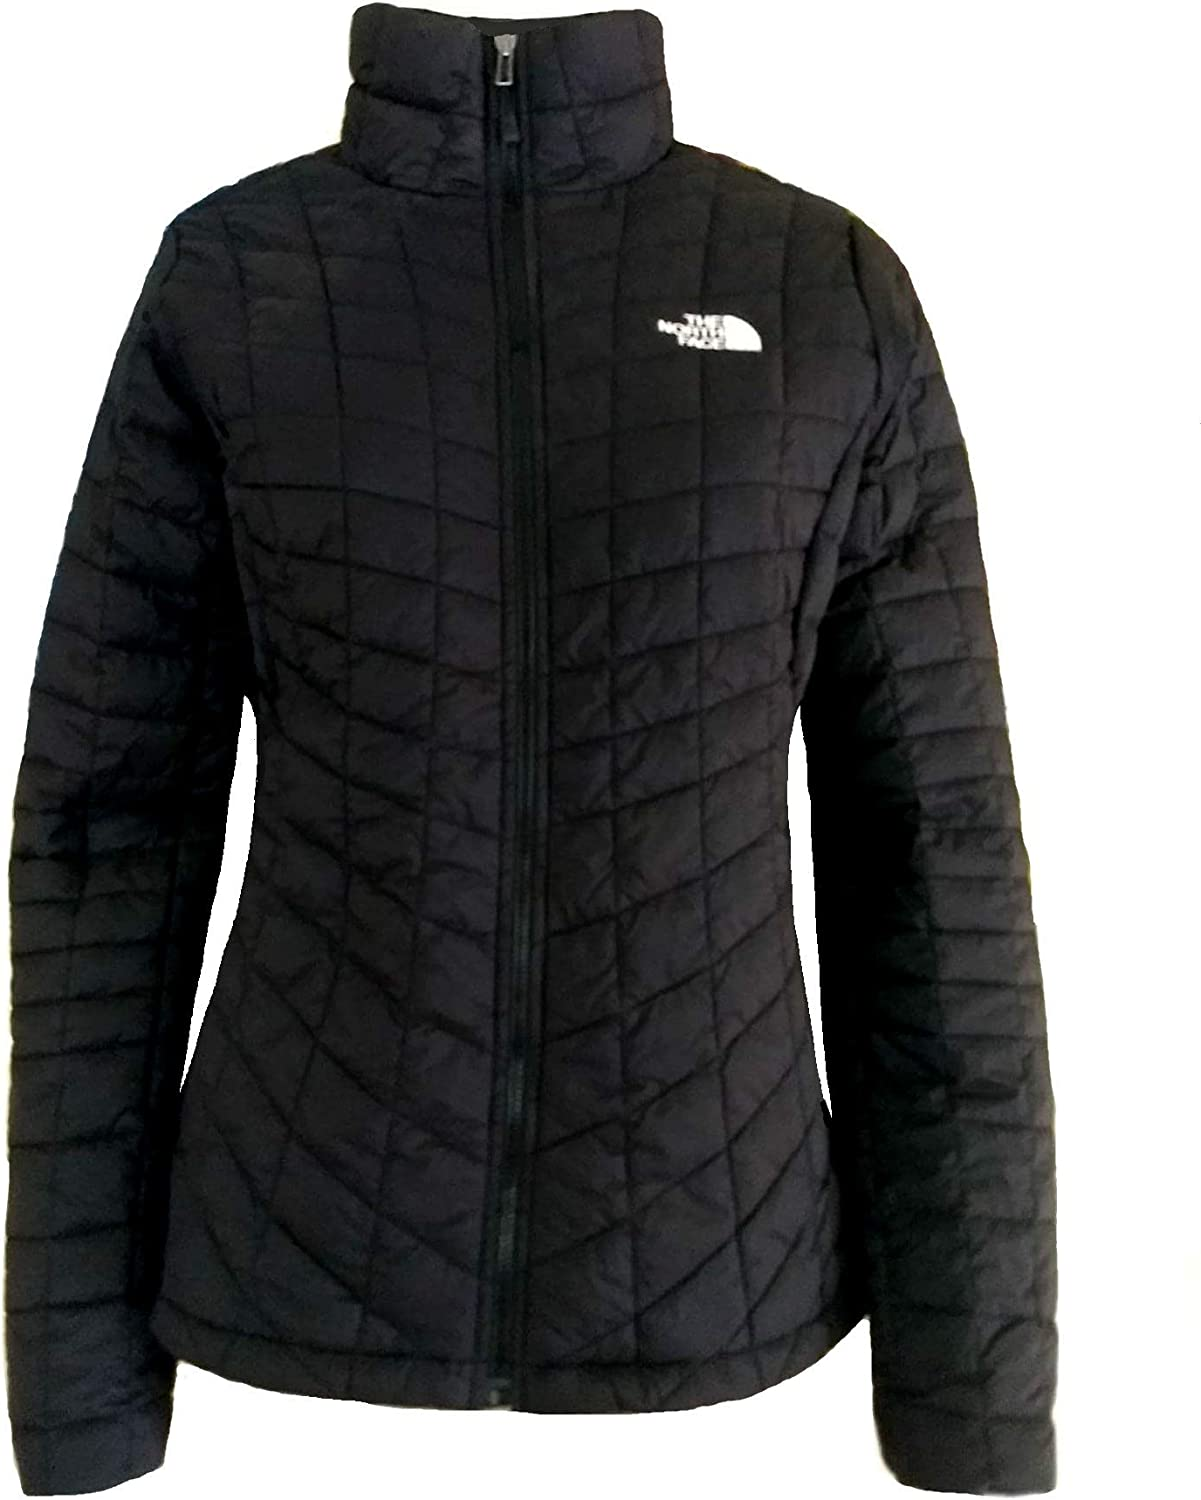 The North Face Women's Thermoball Full Zip Insulated Jacket (Small, TNF Black)